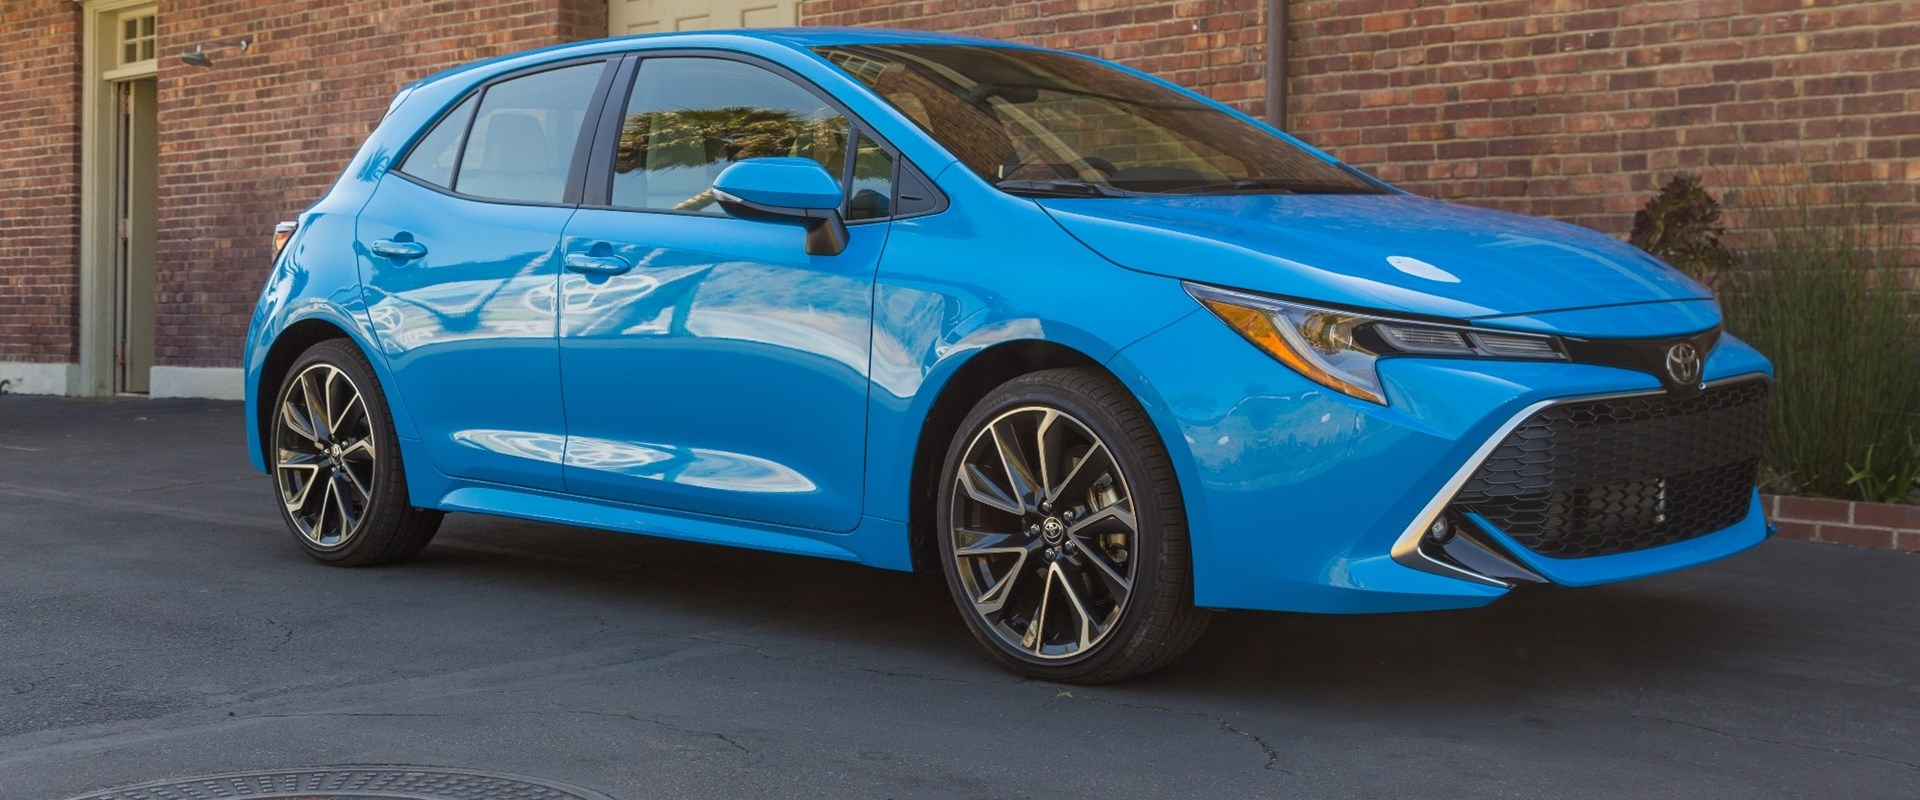 2019 toyota corolla hatchback first drive review antidote to boring rh carbuzz com Toyota Corolla Hatch 2007 Yaris Hatch